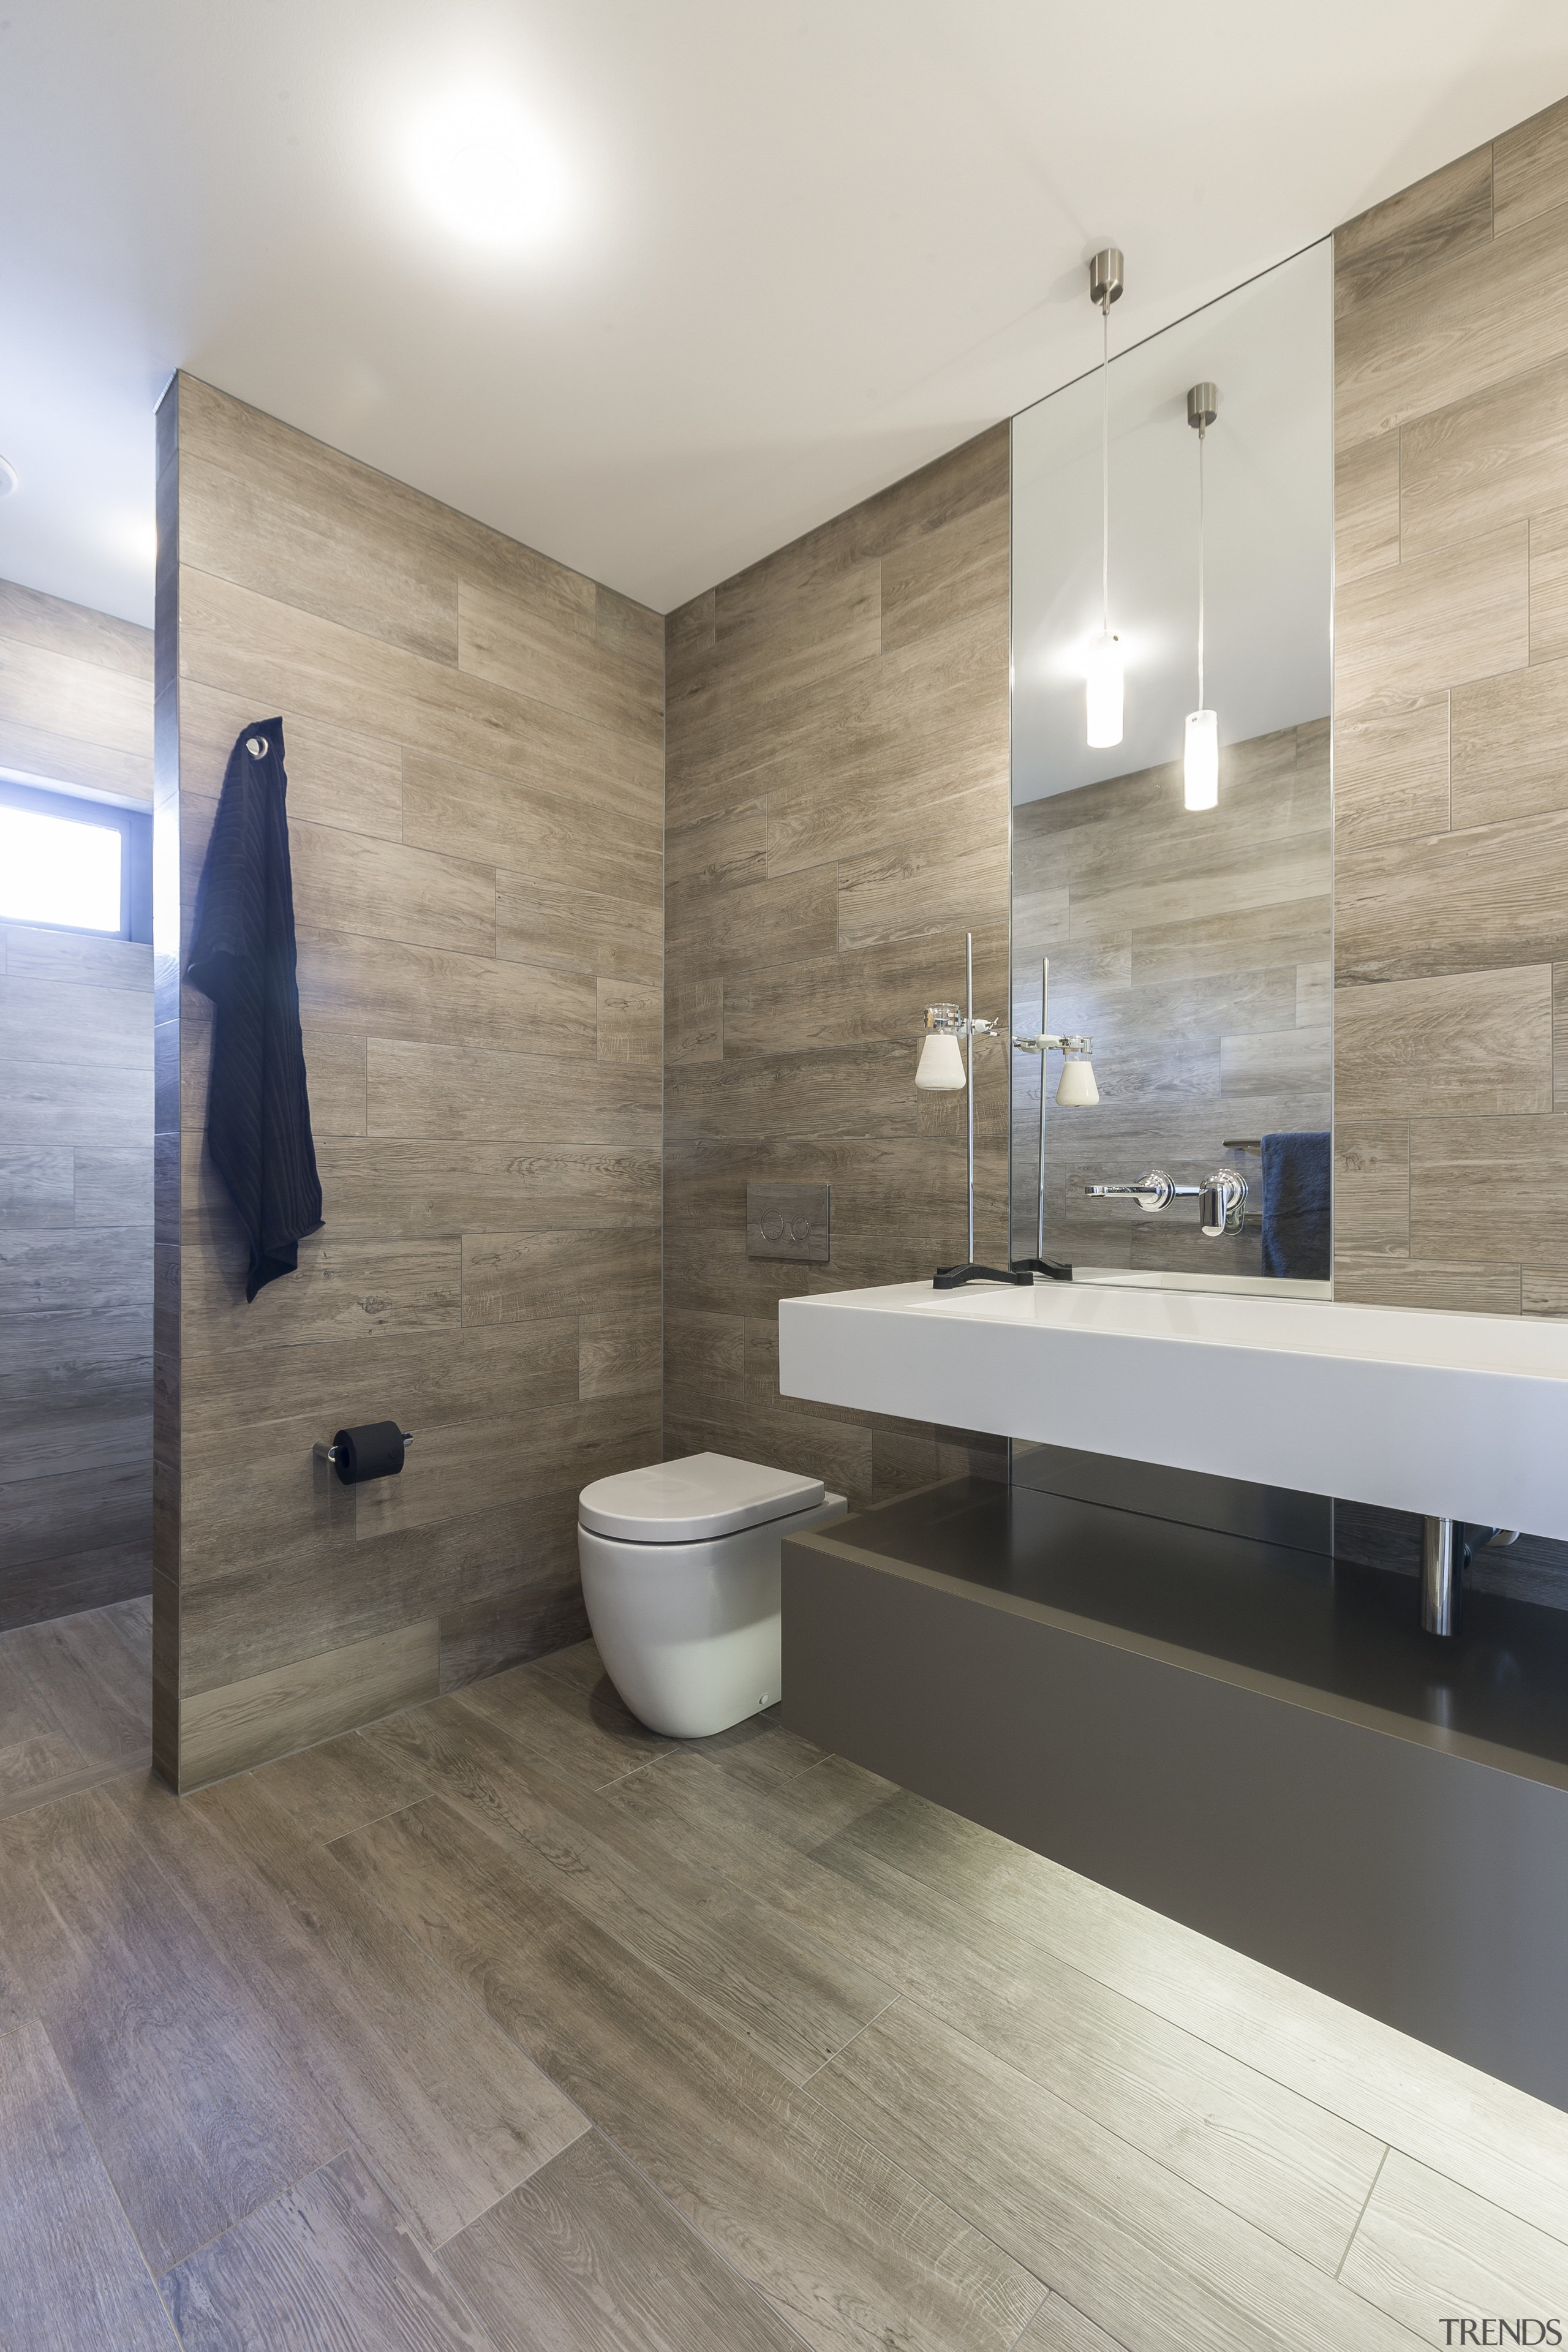 A blade wall provides a bold and private architecture, bathroom, floor, flooring, hardwood, home, interior design, laminate flooring, real estate, room, sink, tile, wall, wood, wood flooring, gray